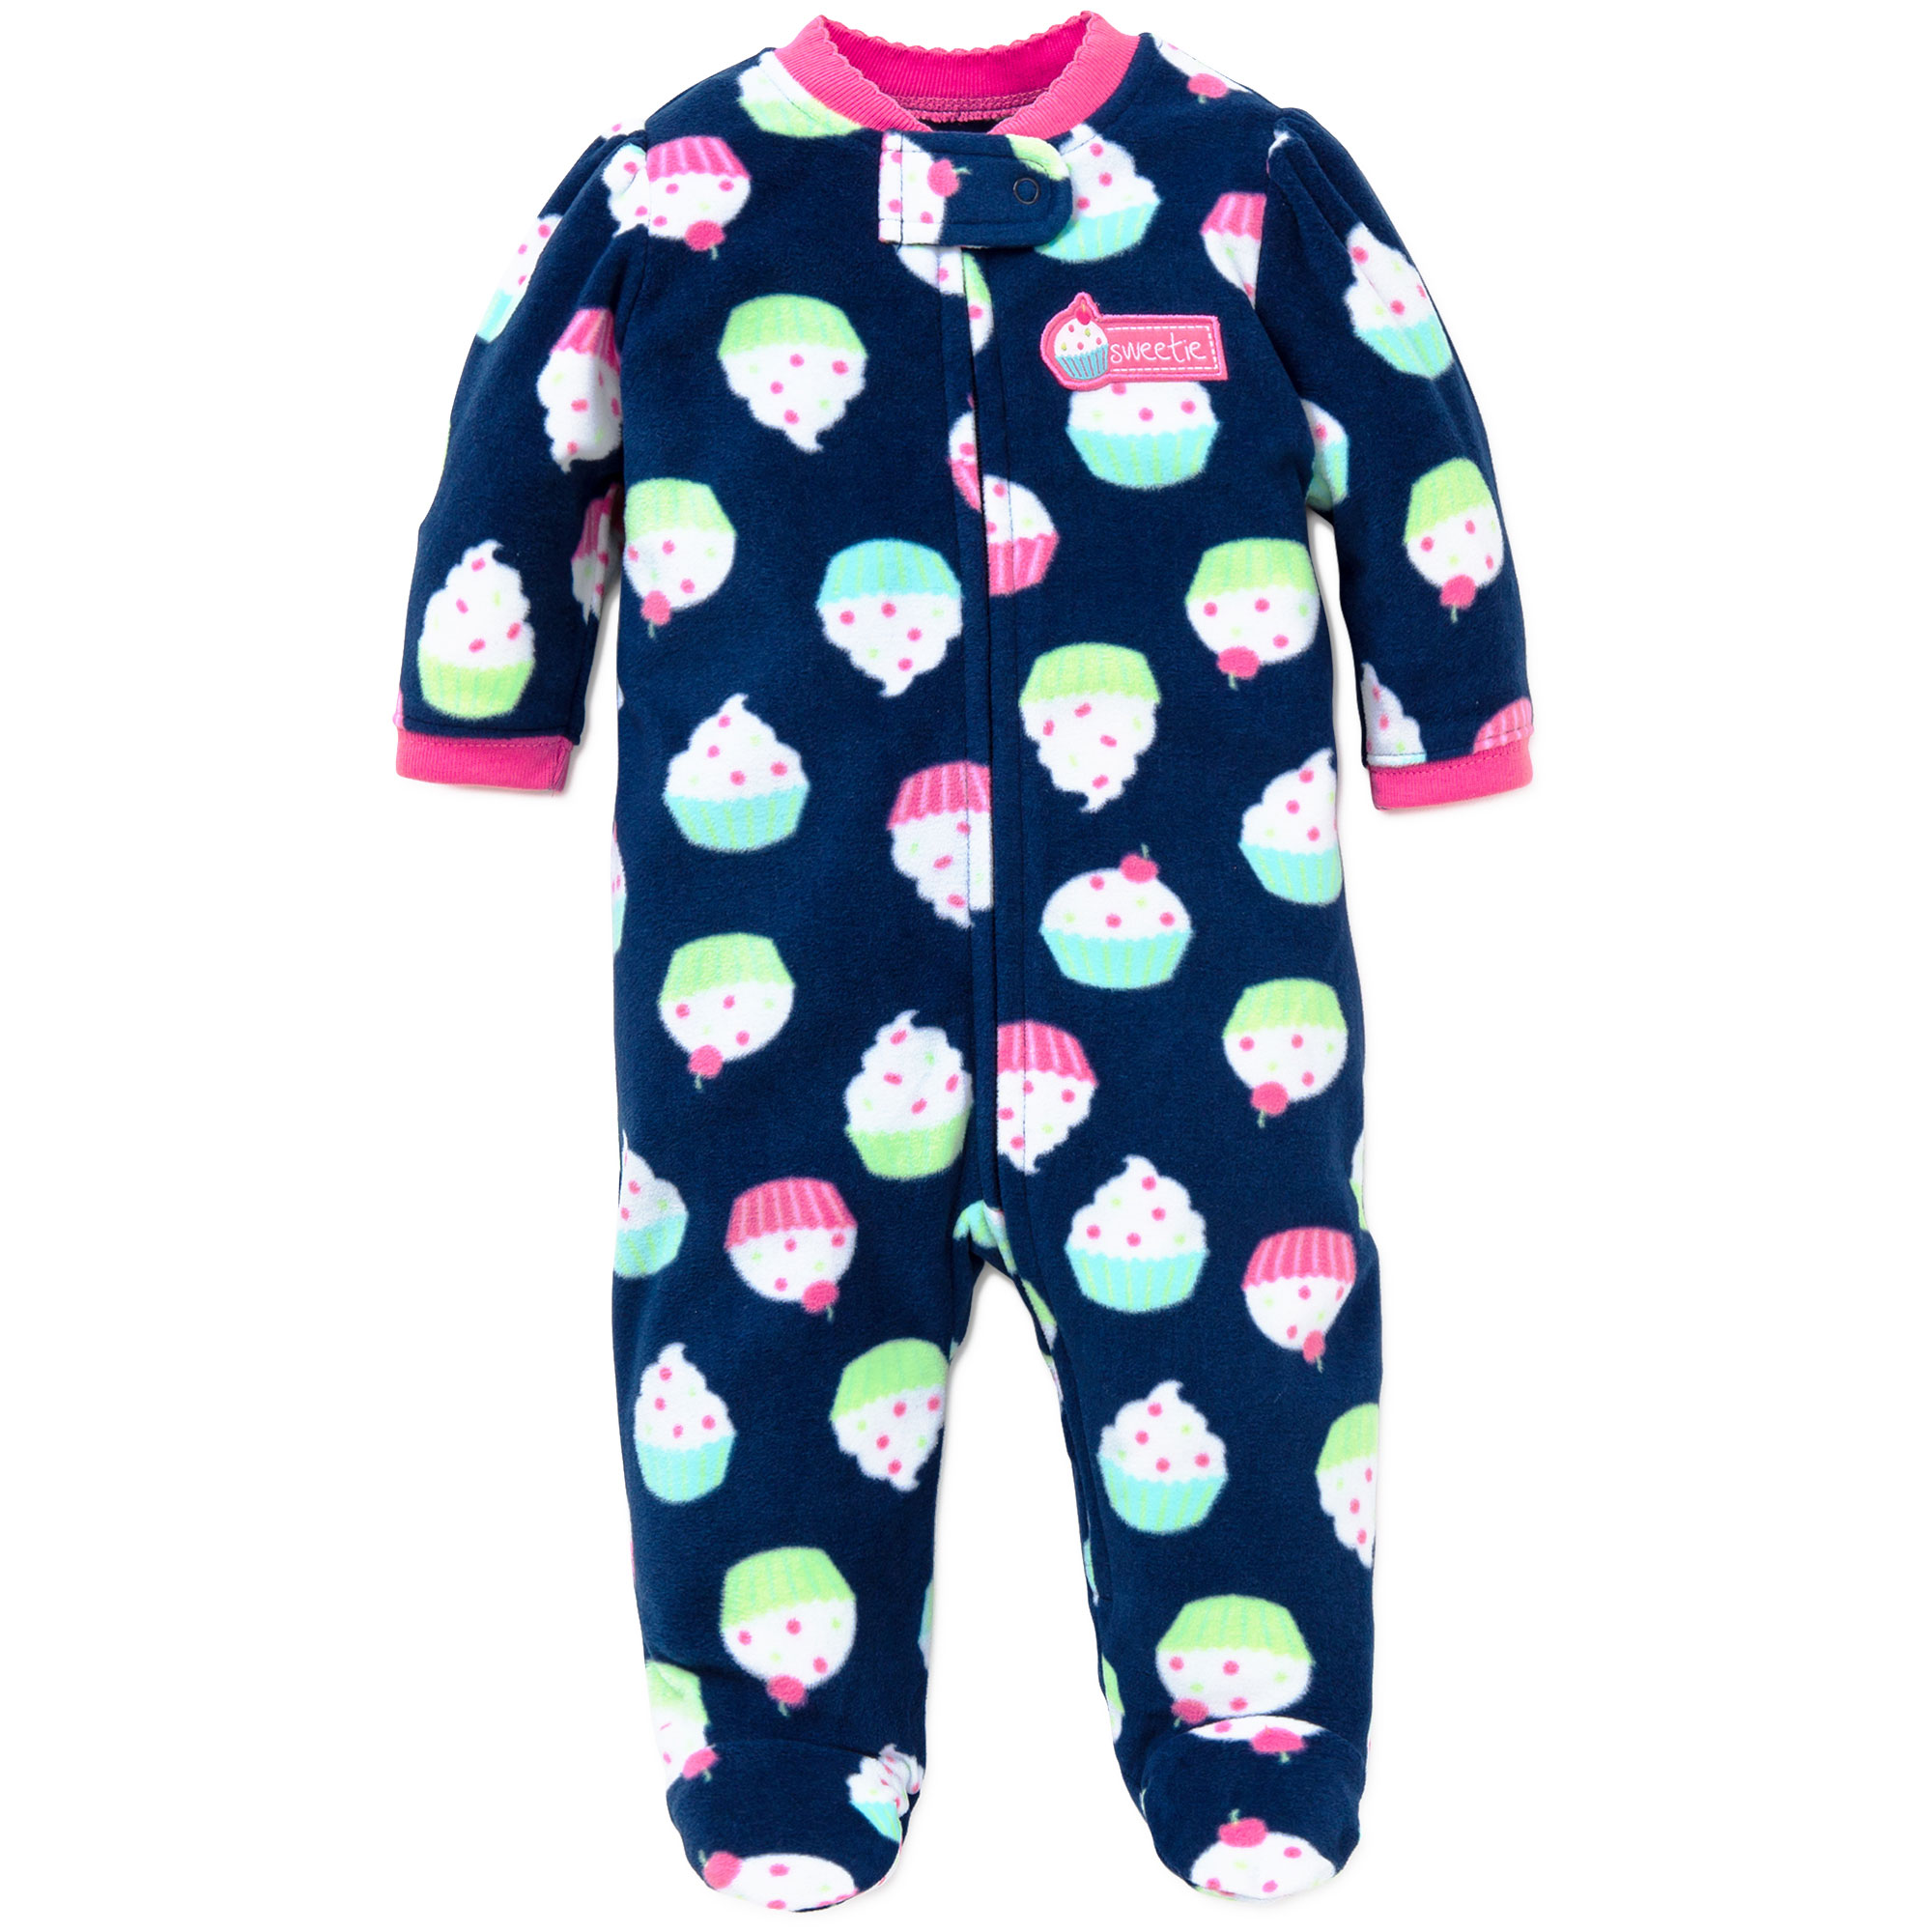 5dc22a390 Little Me - Little Me Cupcake Blanket Sleeper Footie Winter Pajamas ...